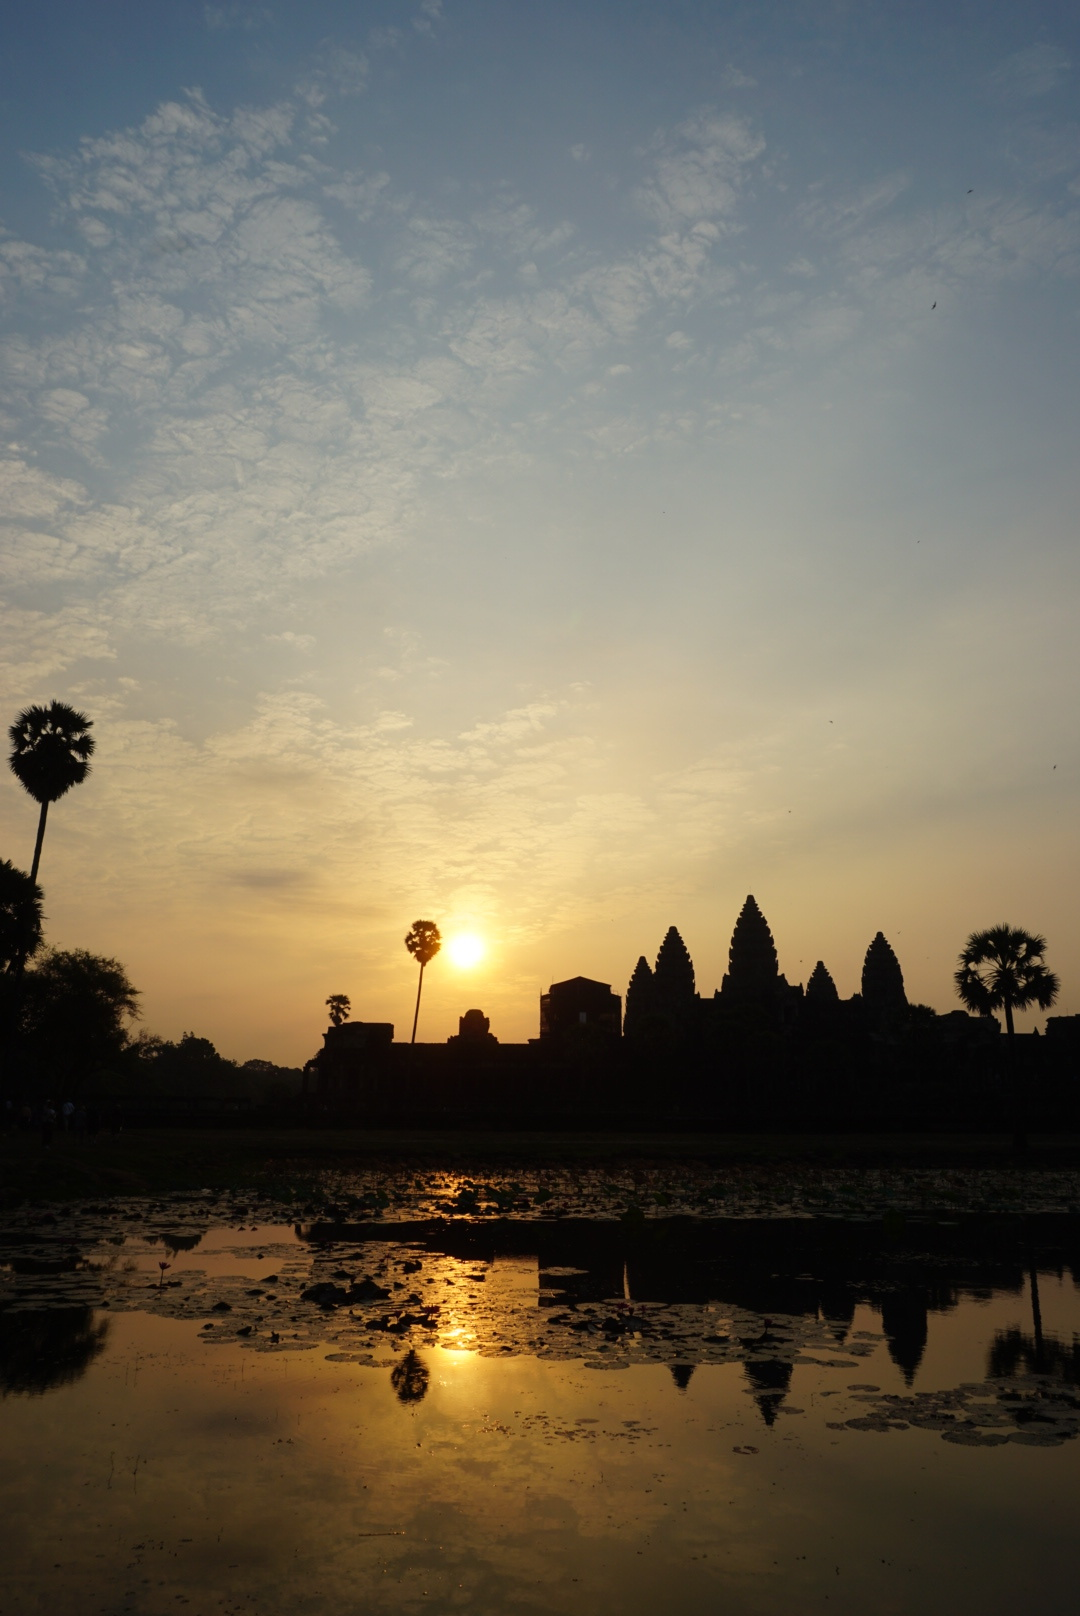 Angkor Wat once the sun came up higher